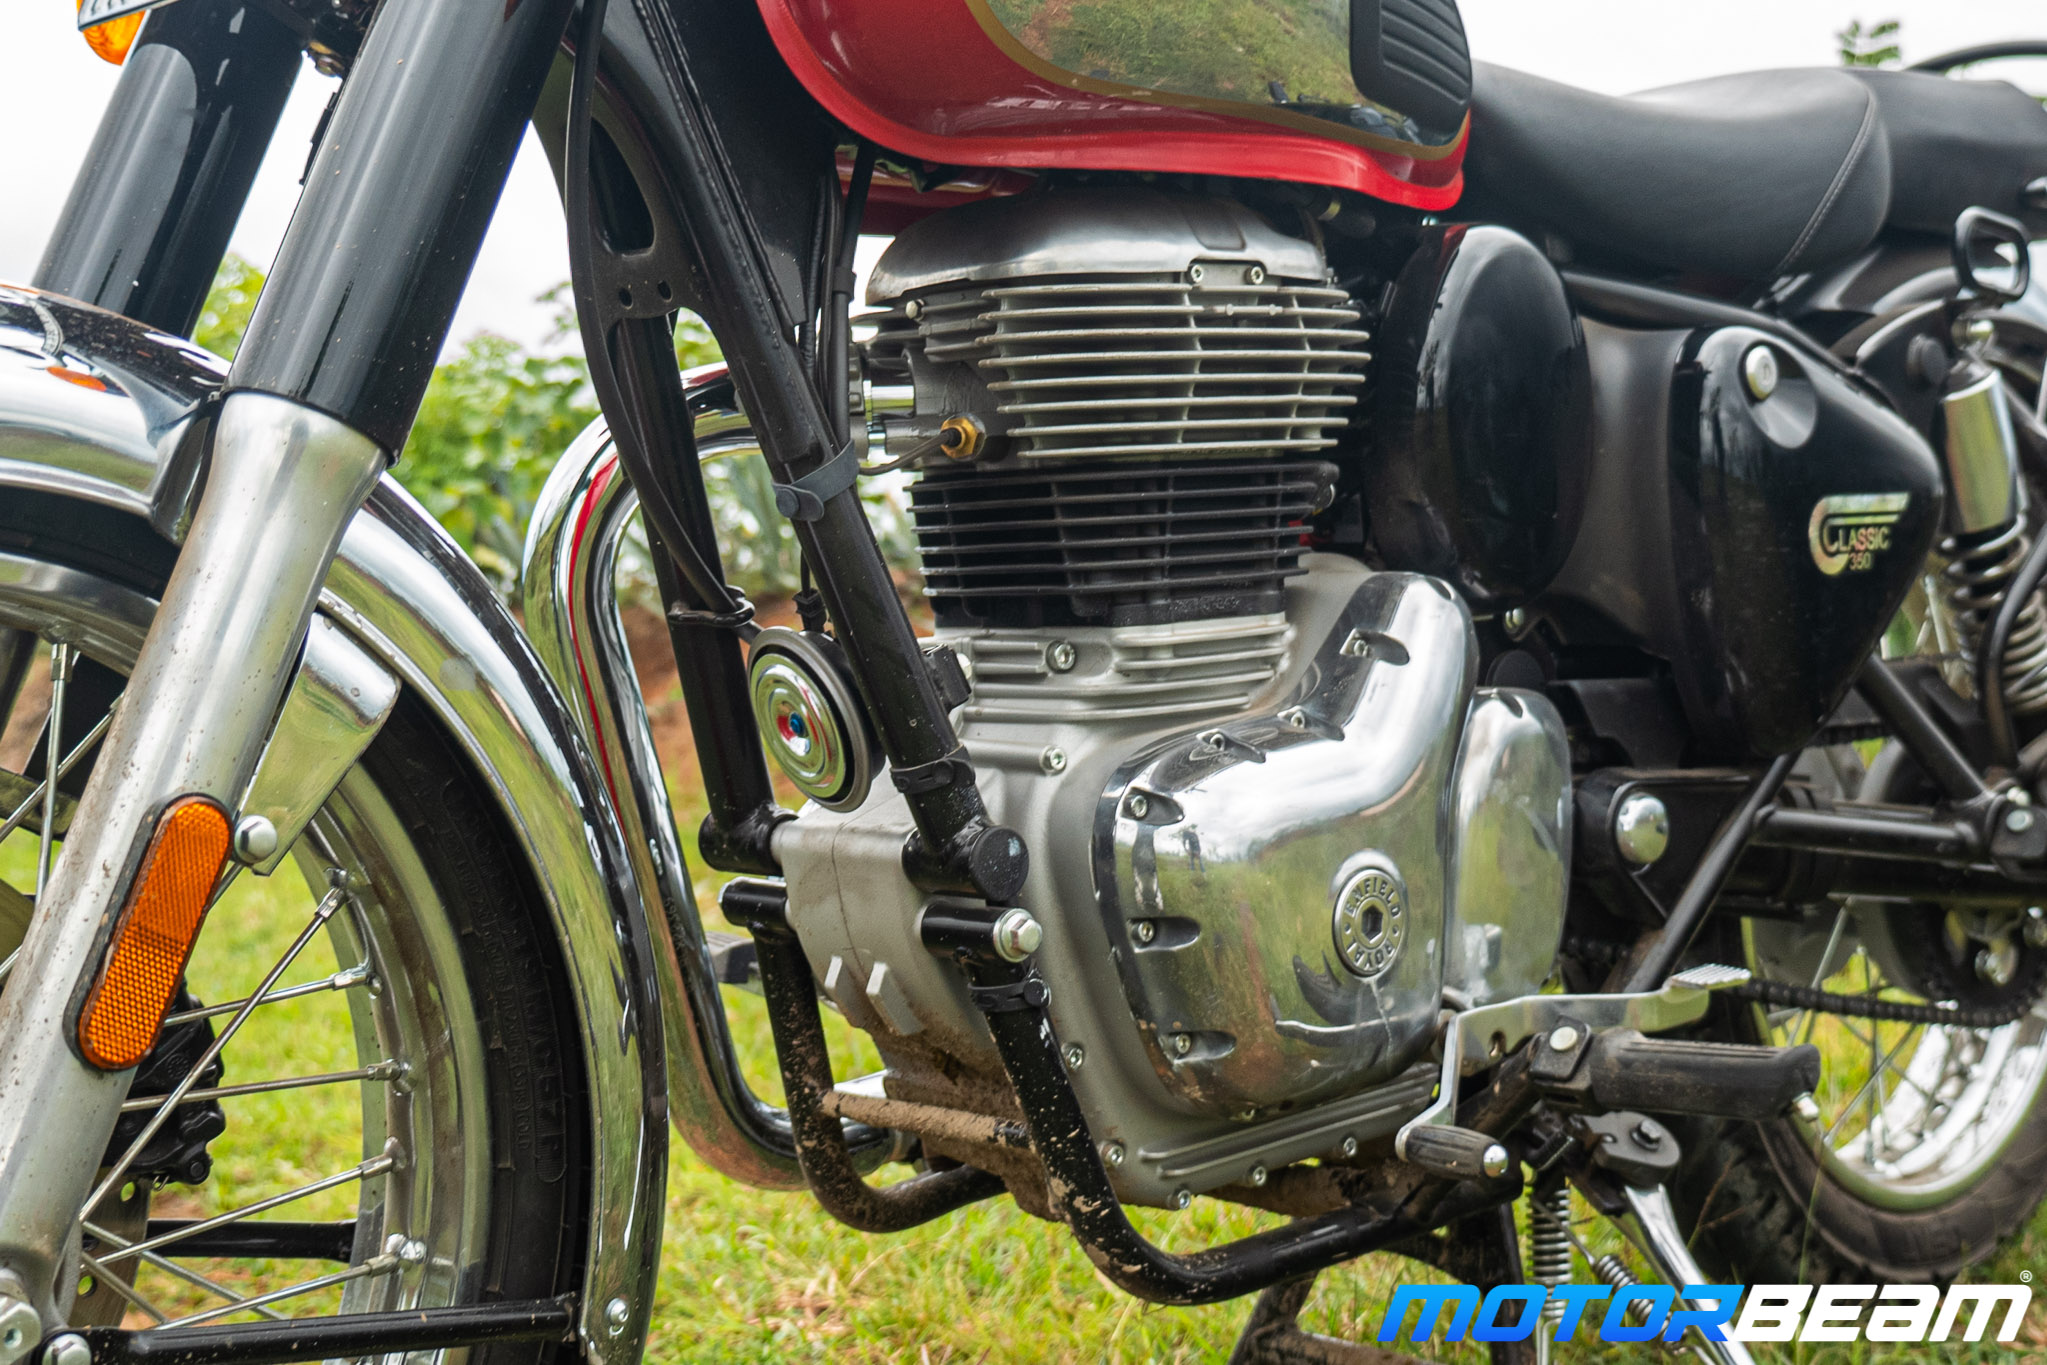 2022 Royal Enfield Classic 350 Review 22